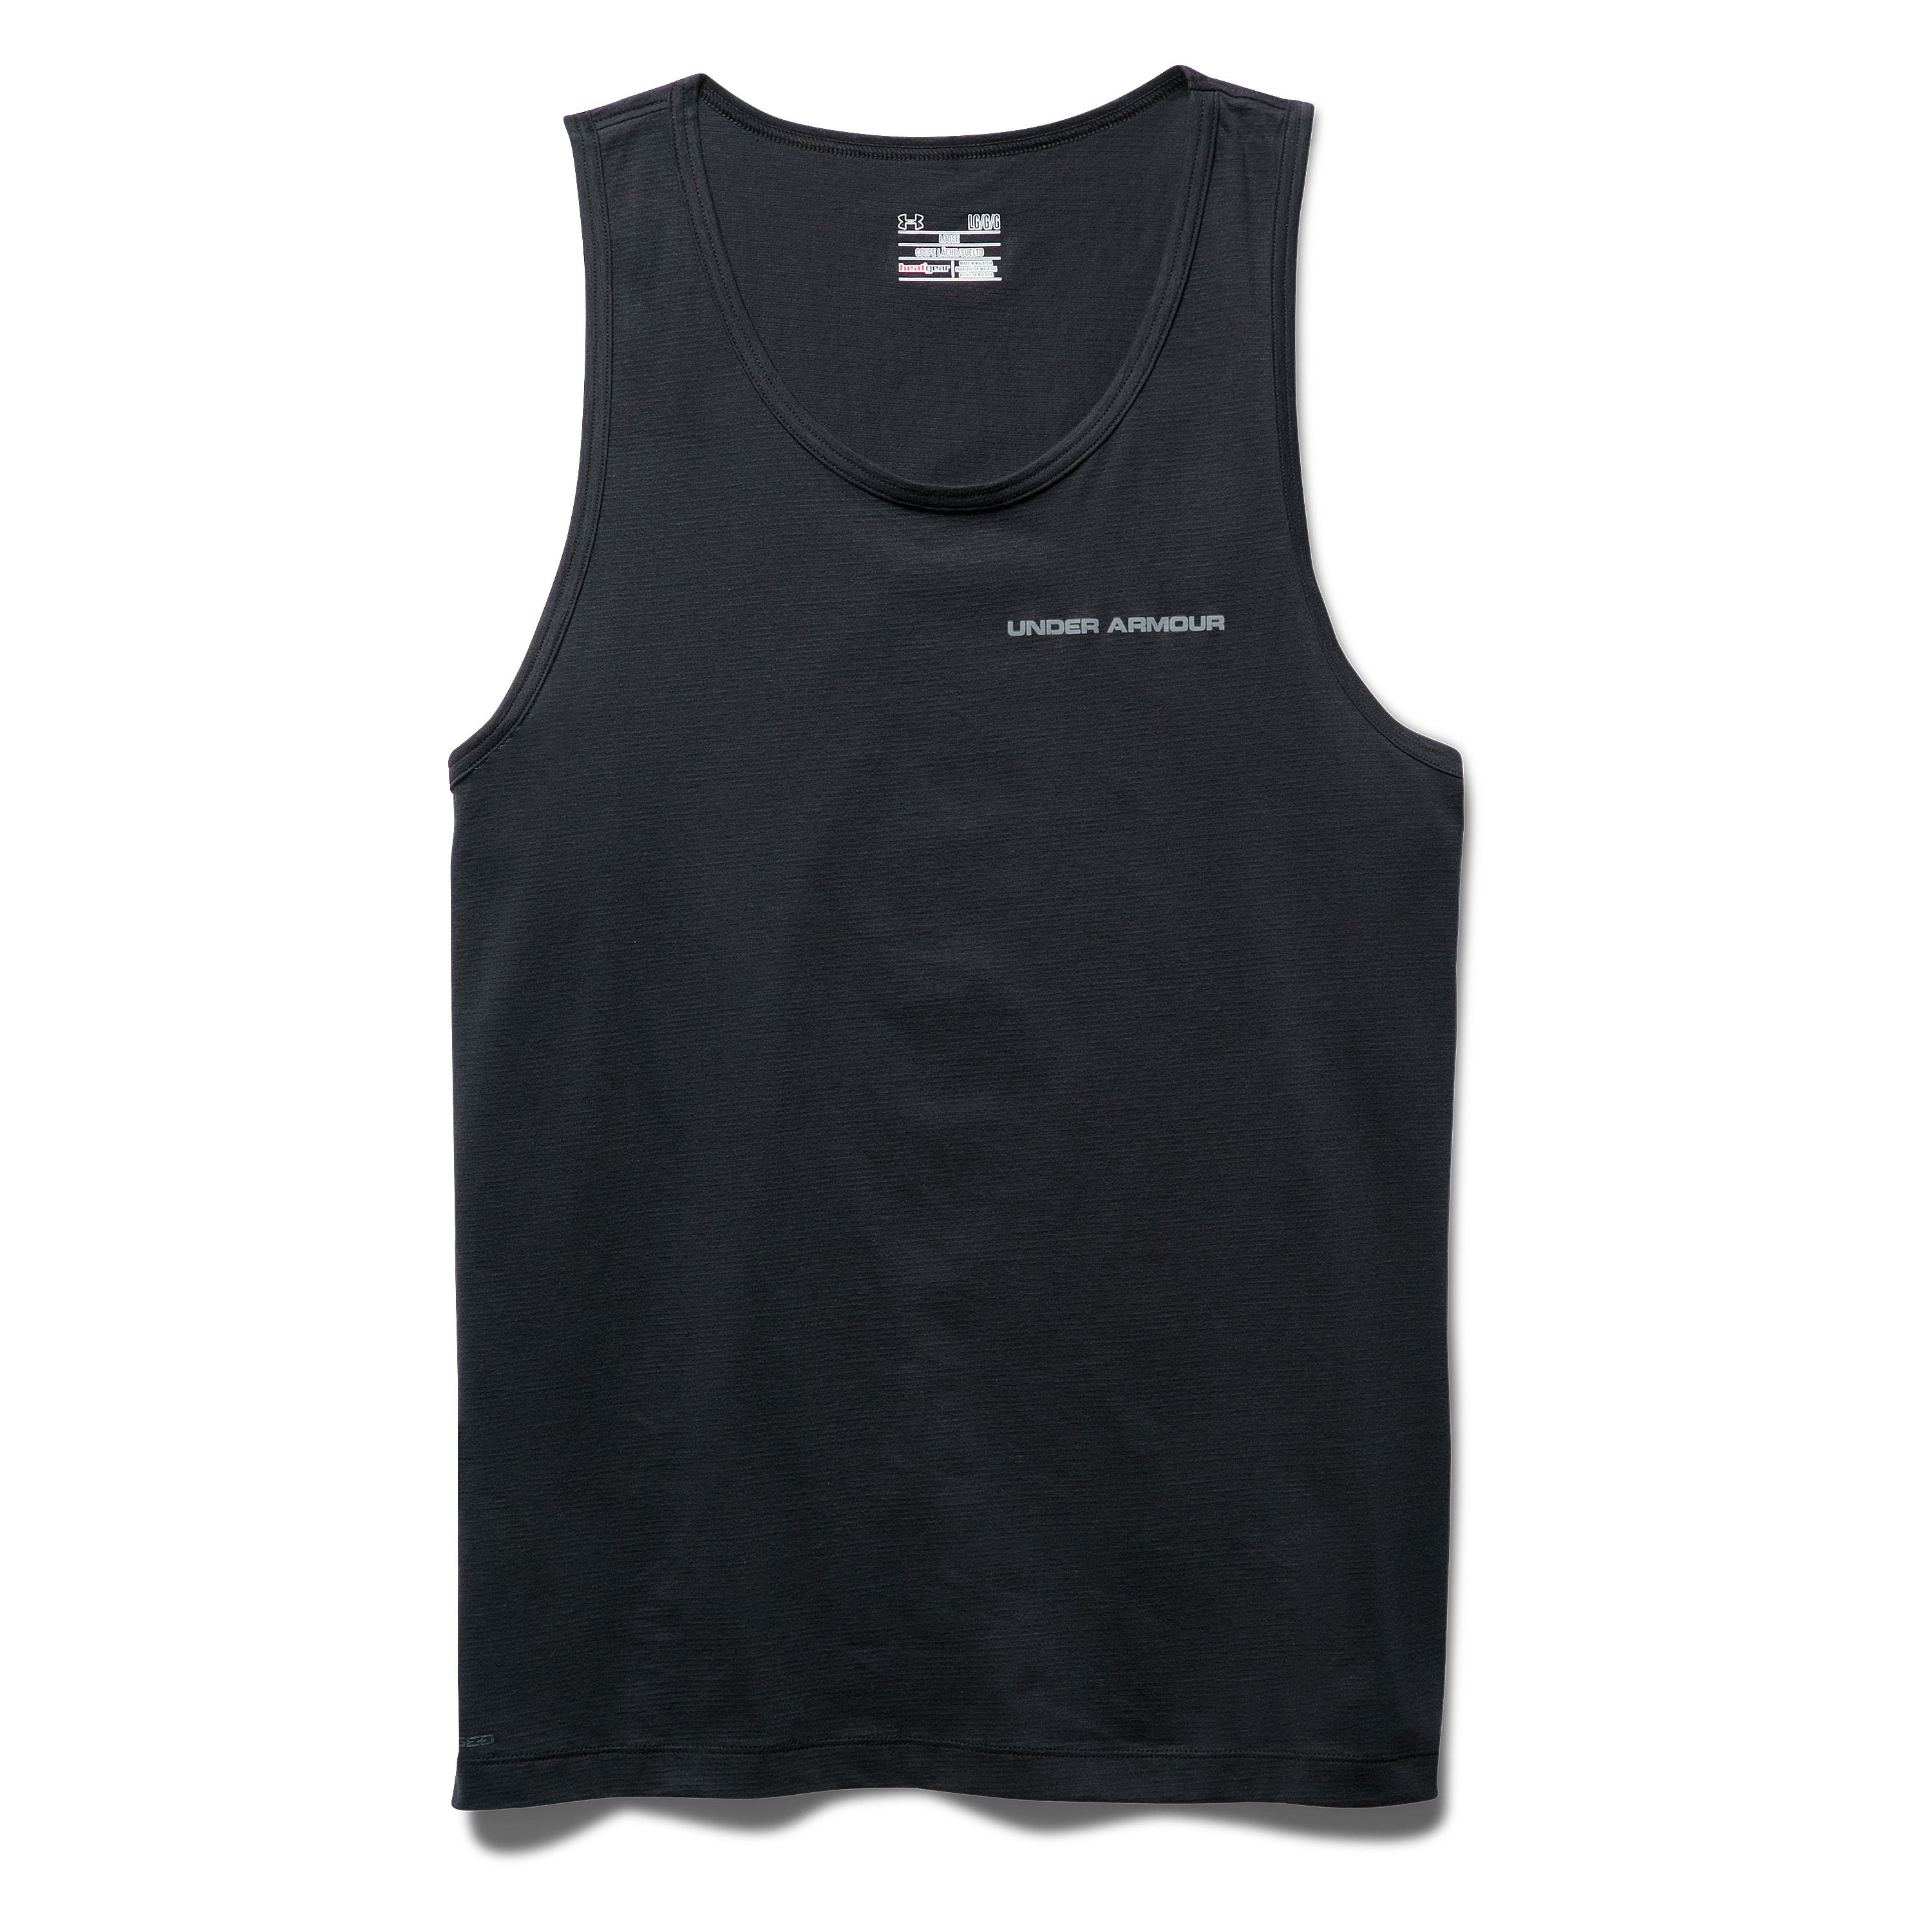 Under Armour Tank-Top Charged Cotton black/gray